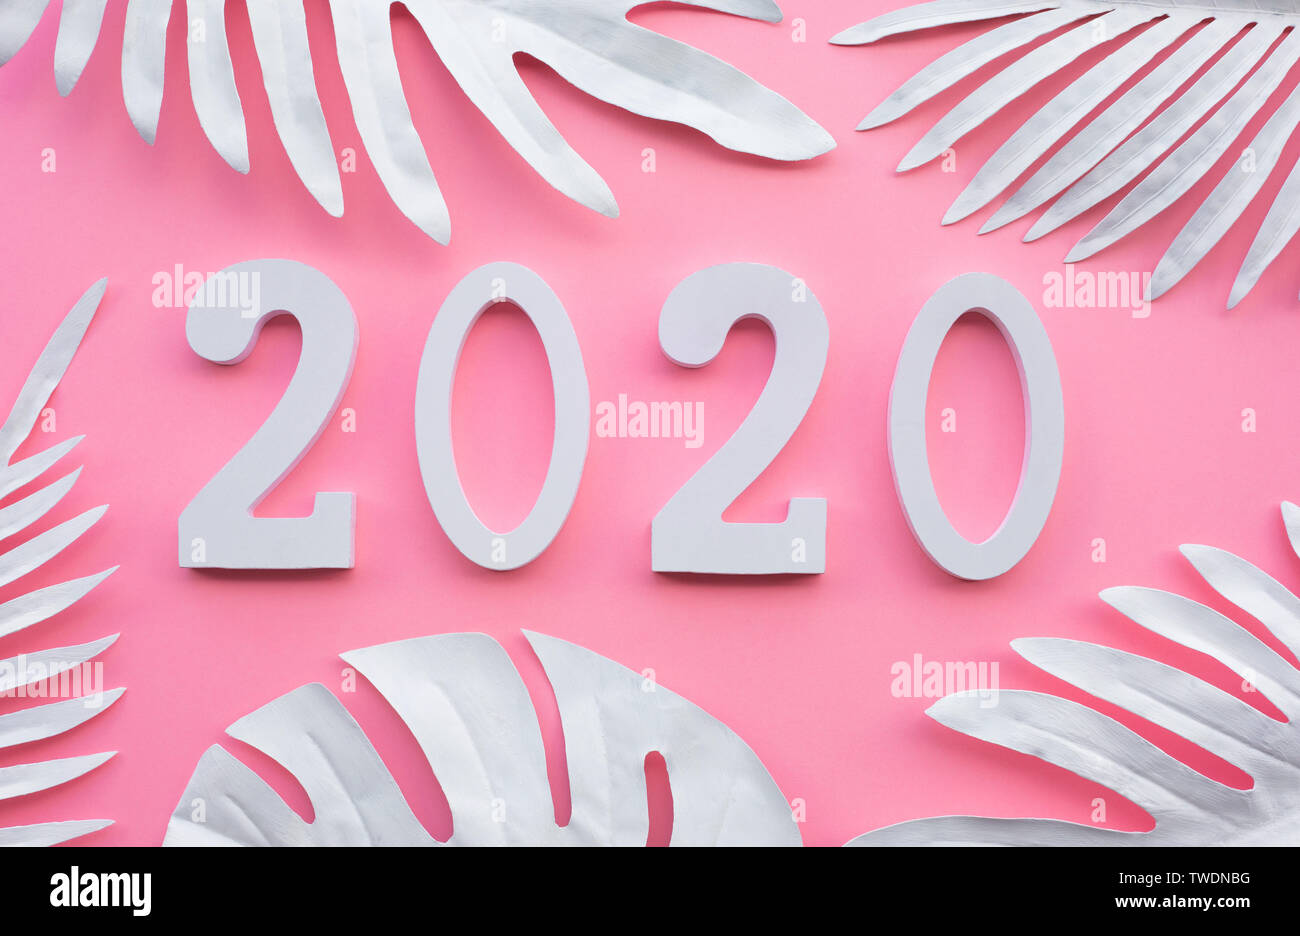 2020 New Year Celebration Concepts Presents Text Number Decoration With Tropical Leaf On Colorful Background Inspiration Ideas Design Goal Plan And A Stock Photo Alamy